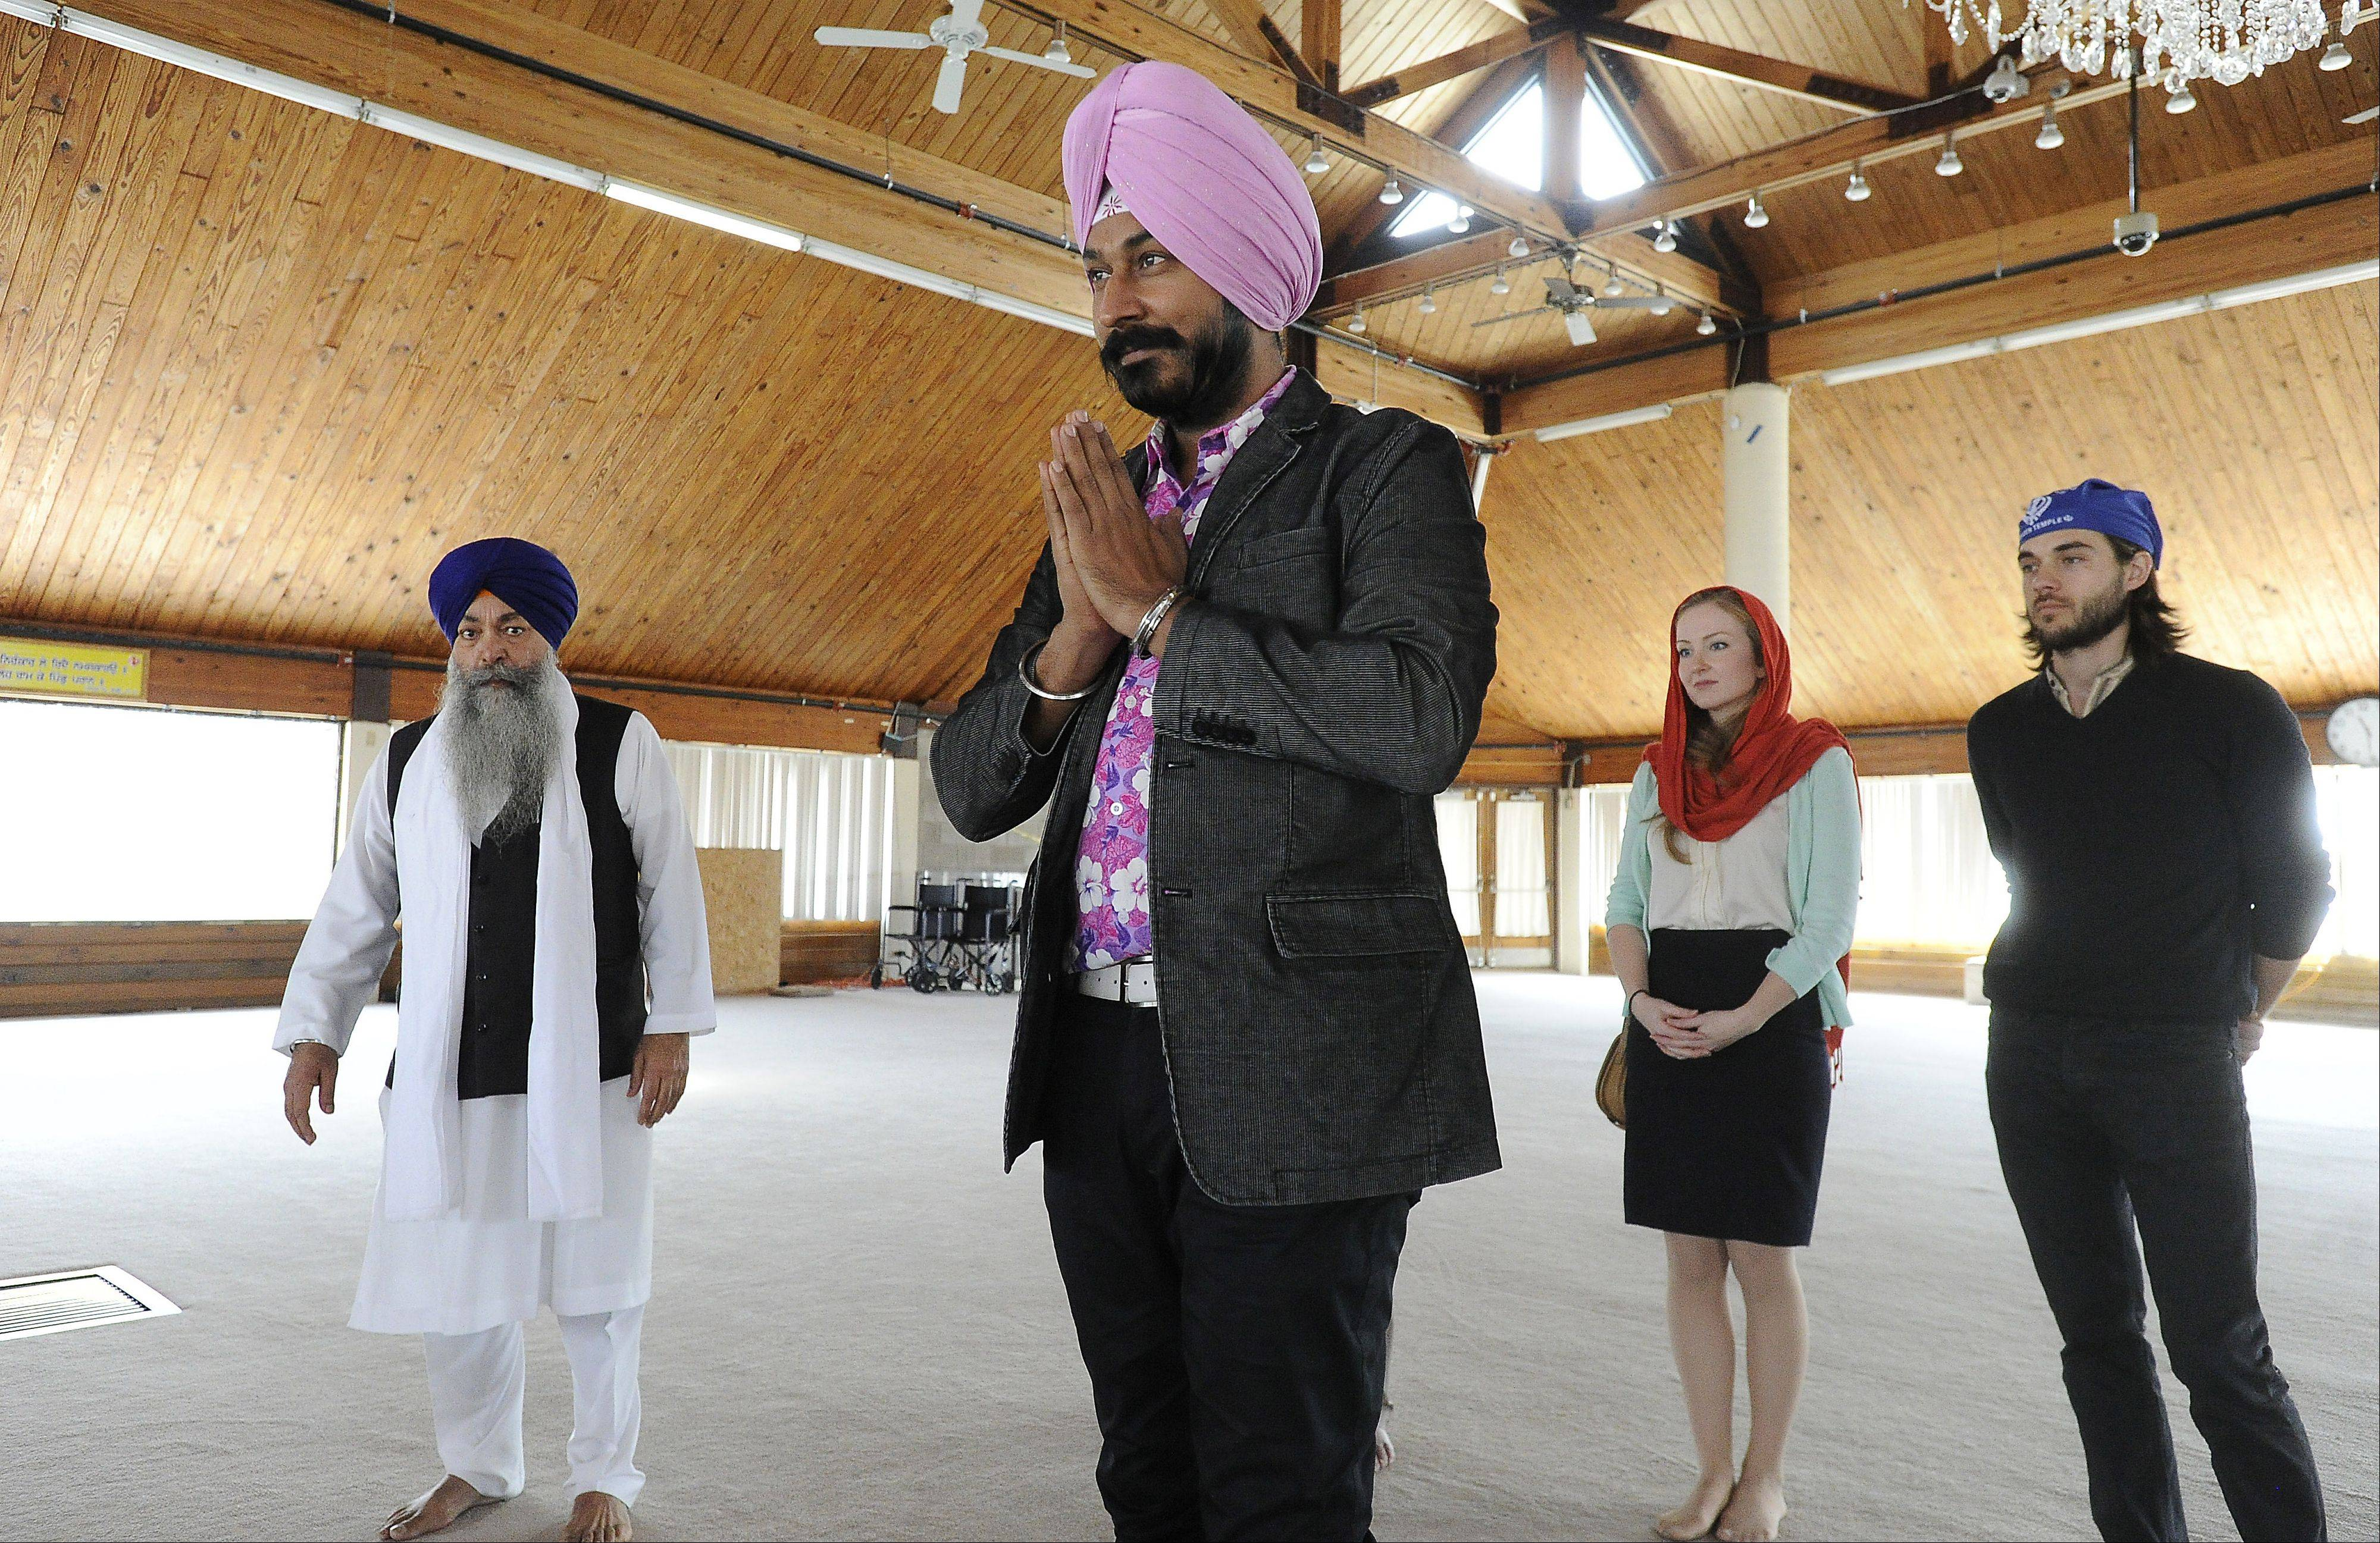 Gurucharan Singh, who starred in a popular Indian sitcom, prays with former co-star Kari Irwin and friend Scott Footer, both of Palatine, and Priest Gursant Singh Khalsa at the Sikh Religious Society Temple in Palatine.